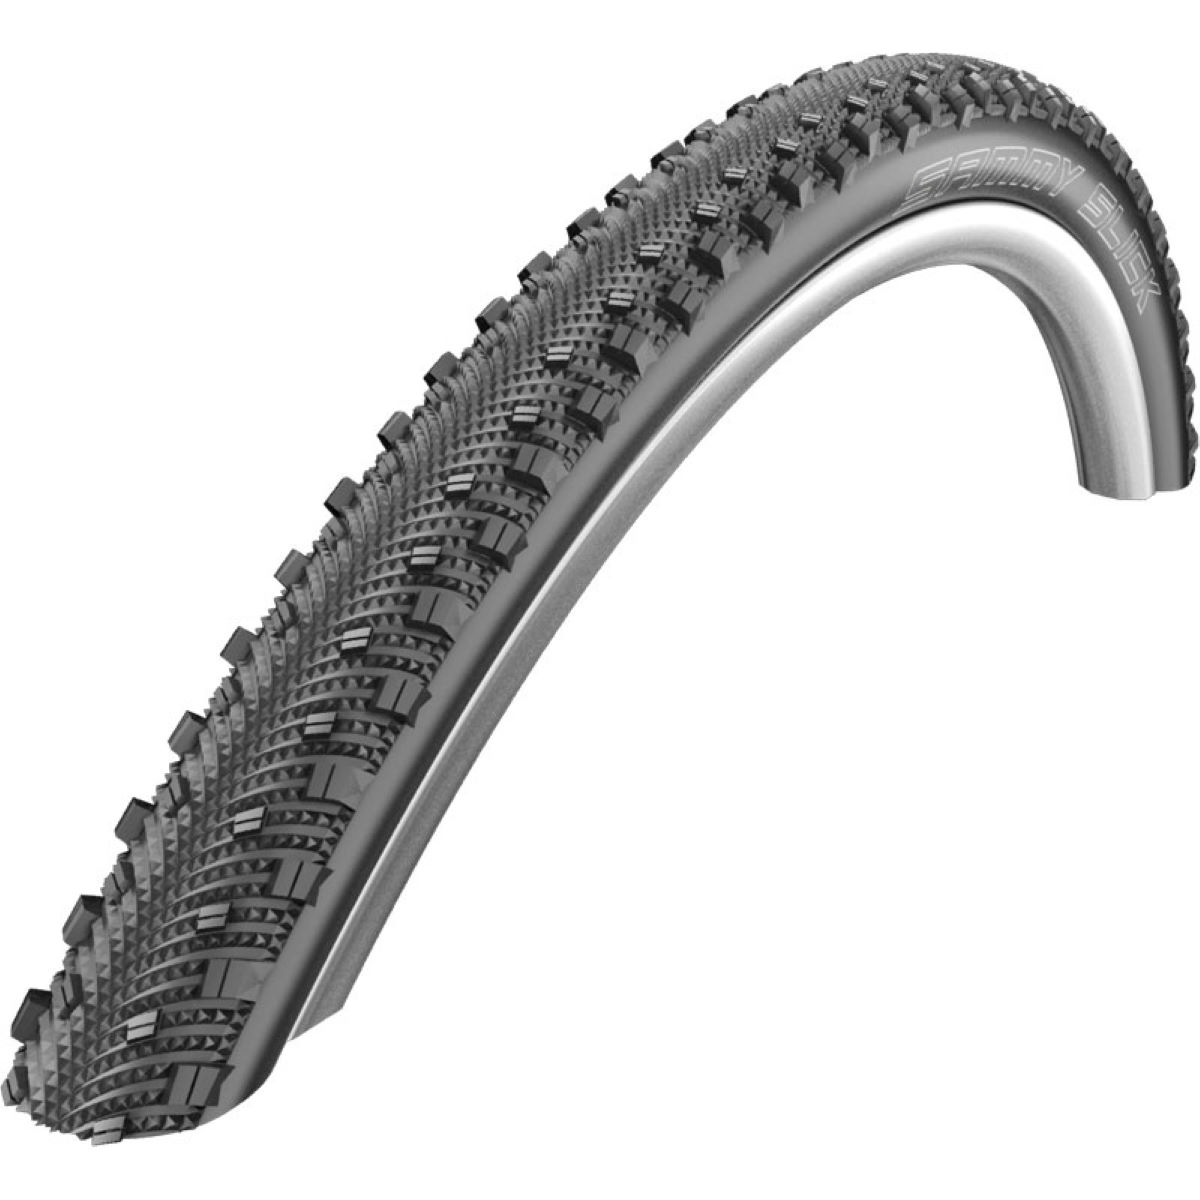 Schwalbe Sammy Slick Folding Cyclocross Tyre